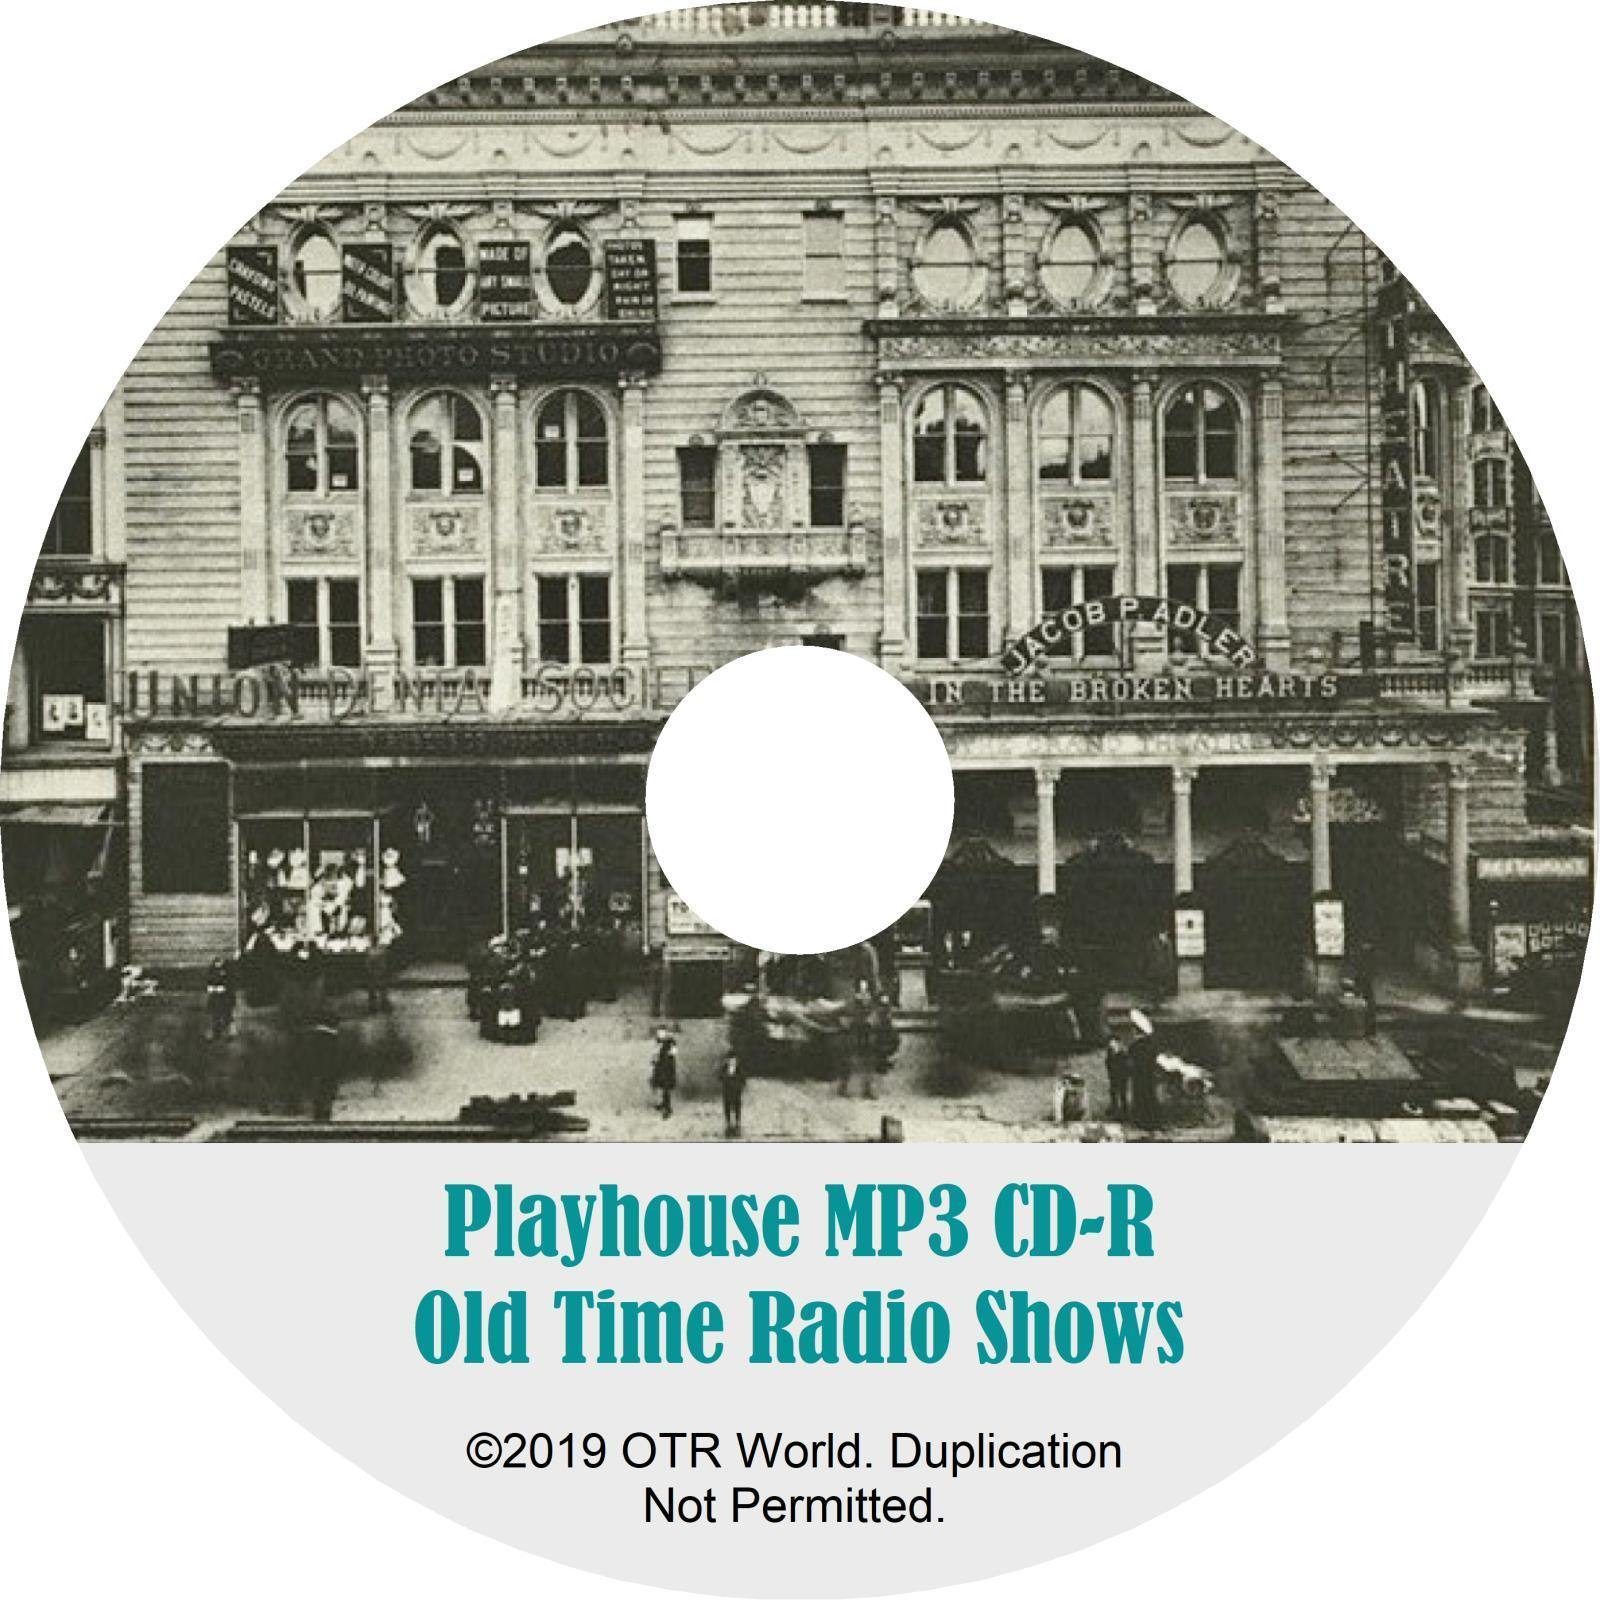 Playhouse OTR Old Time Radio Shows MP3 On CD 13 Episodes - OTR World